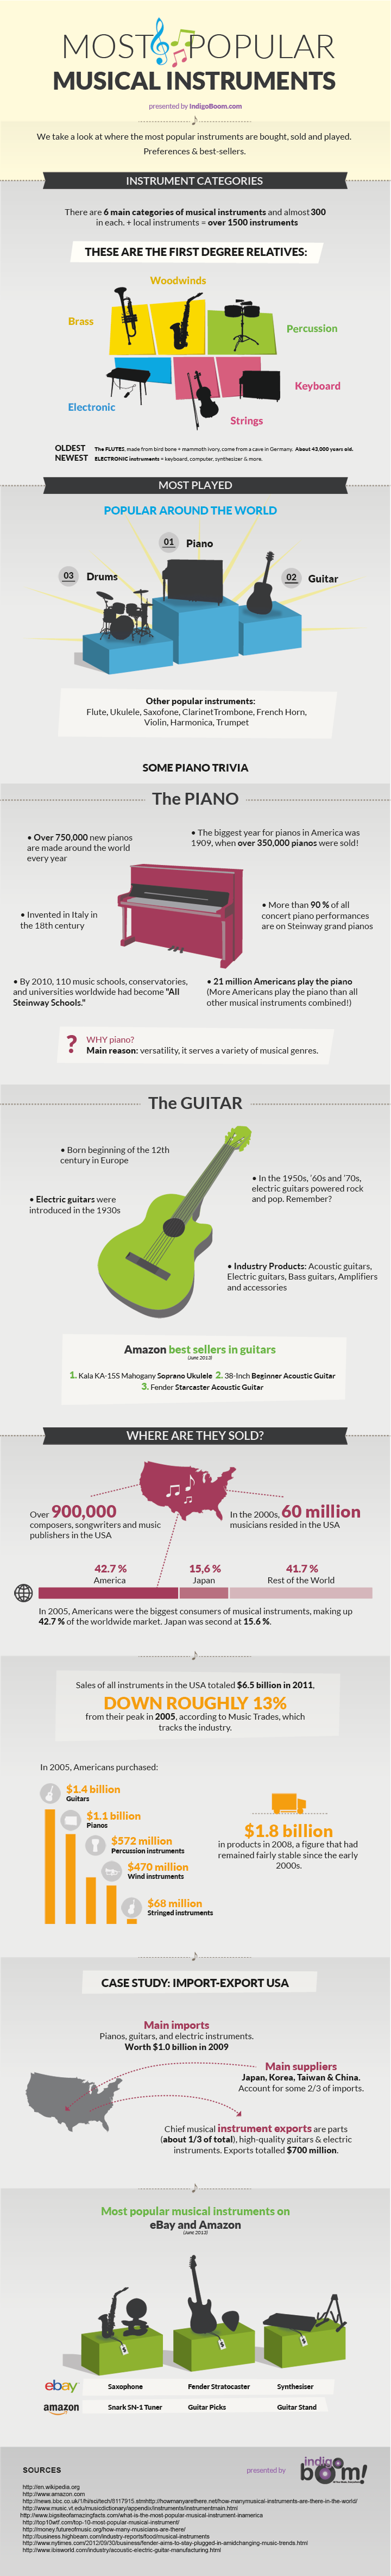 Musical Instruments Popularity-Infographic